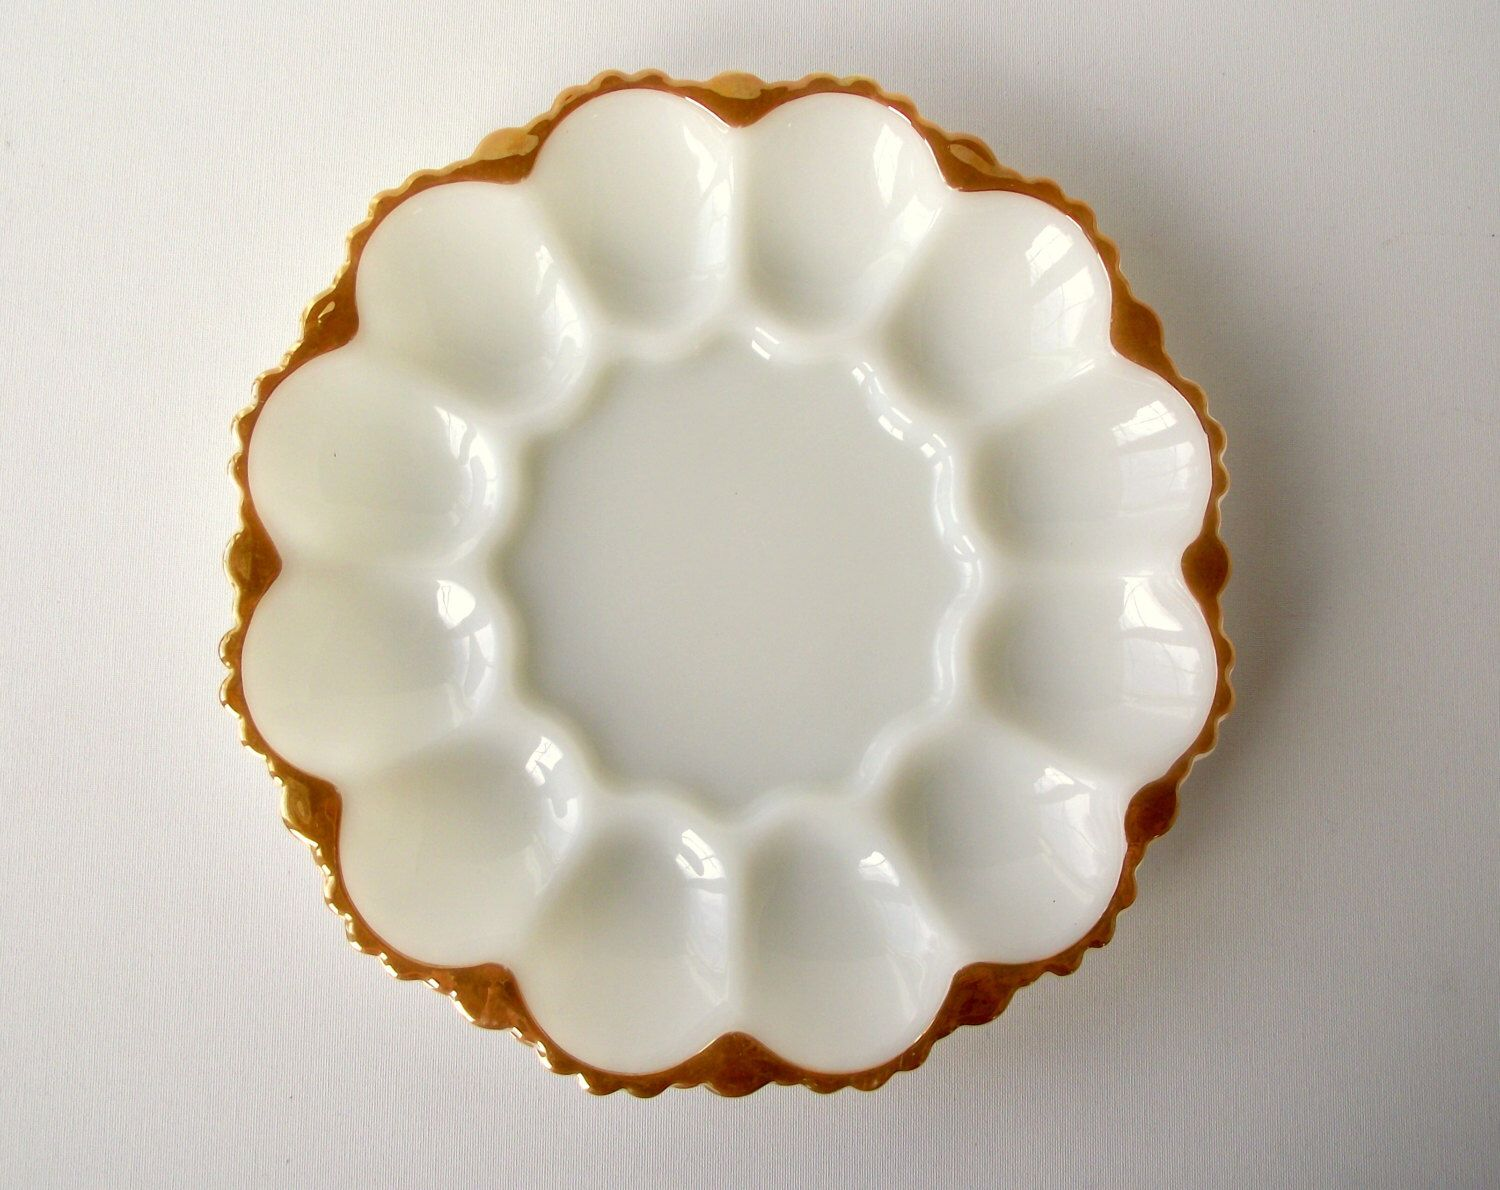 milk glass egg plate with 22k gold from anchor glass deviled